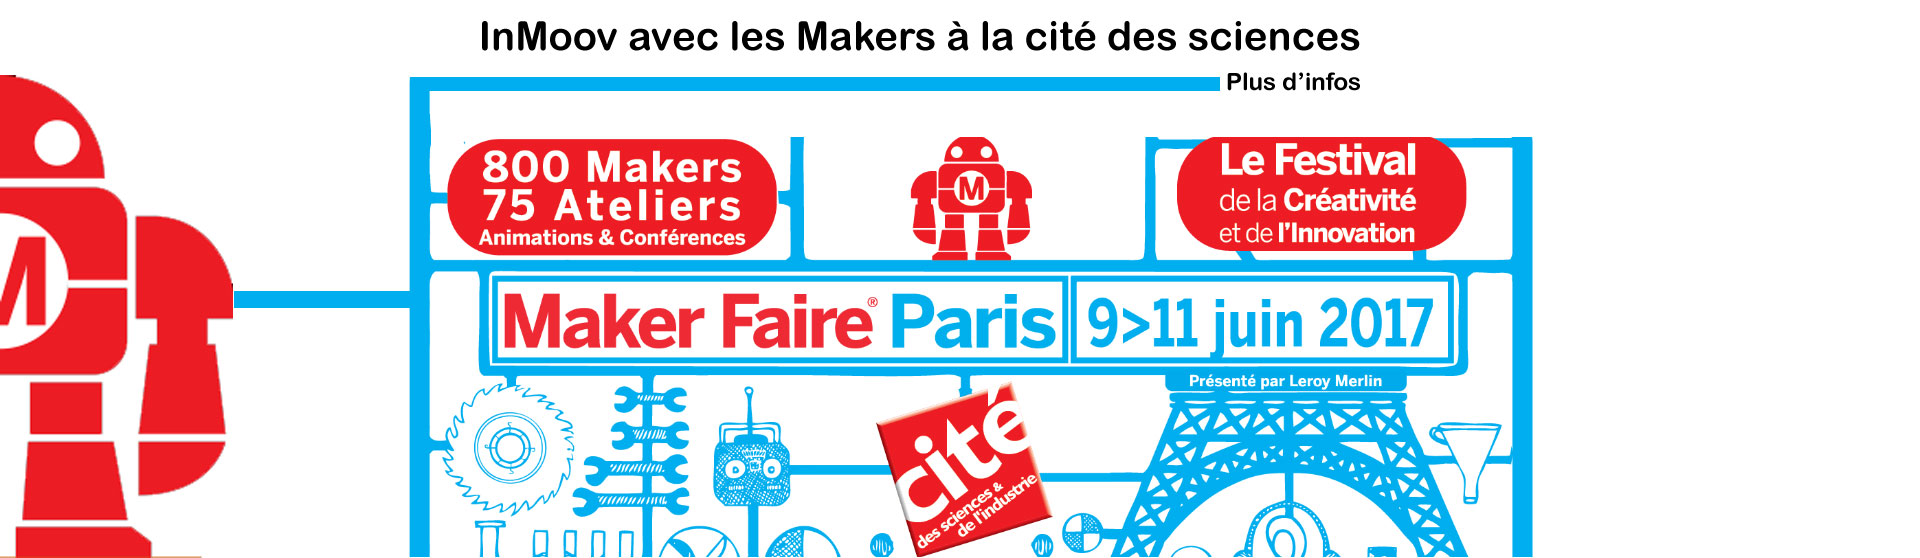 makerfaire-paris-2017